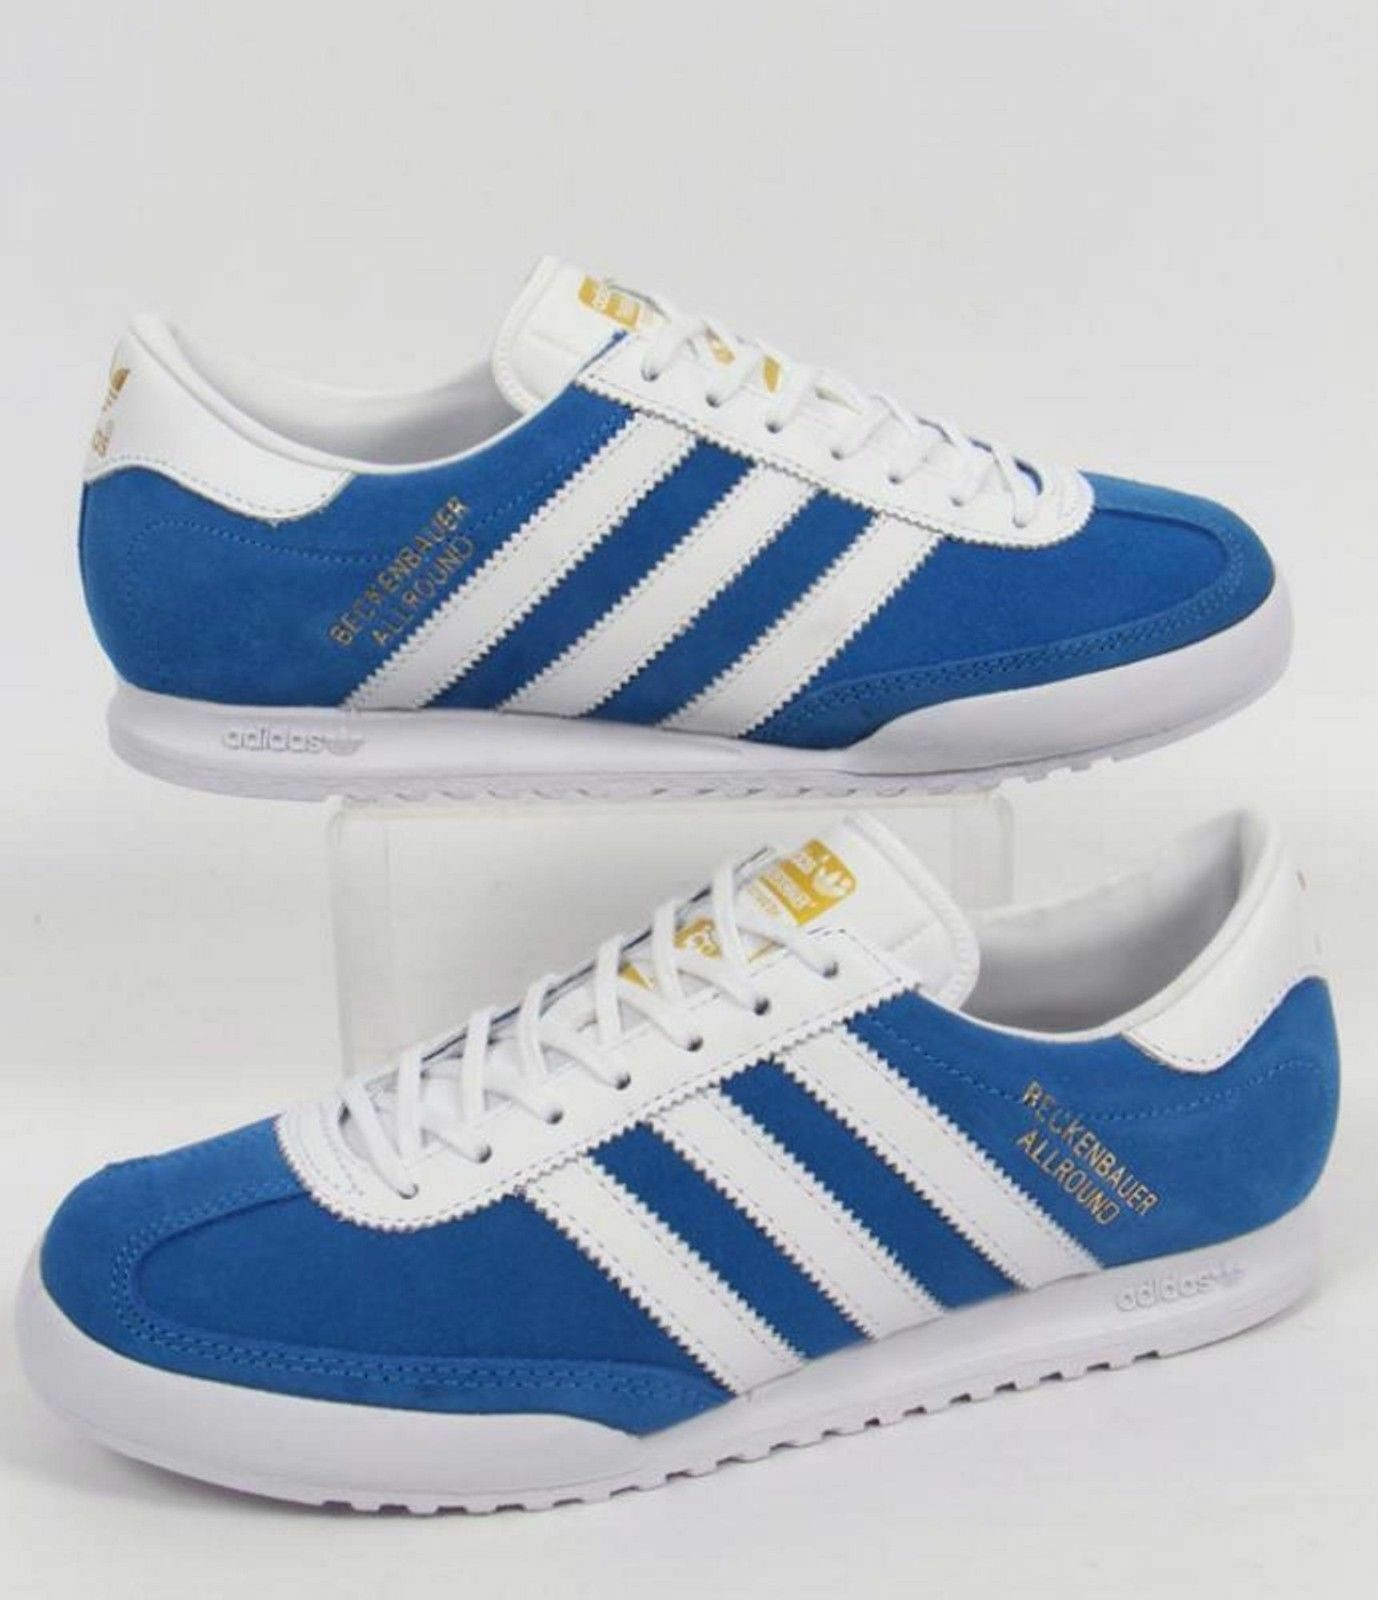 obtenir pas cher dbf55 f5e8b Details about ✅24Hr DELIVERY ✅Adidas Beckenbauer Allround Mens Casual Retro  Trainers Shoes £69